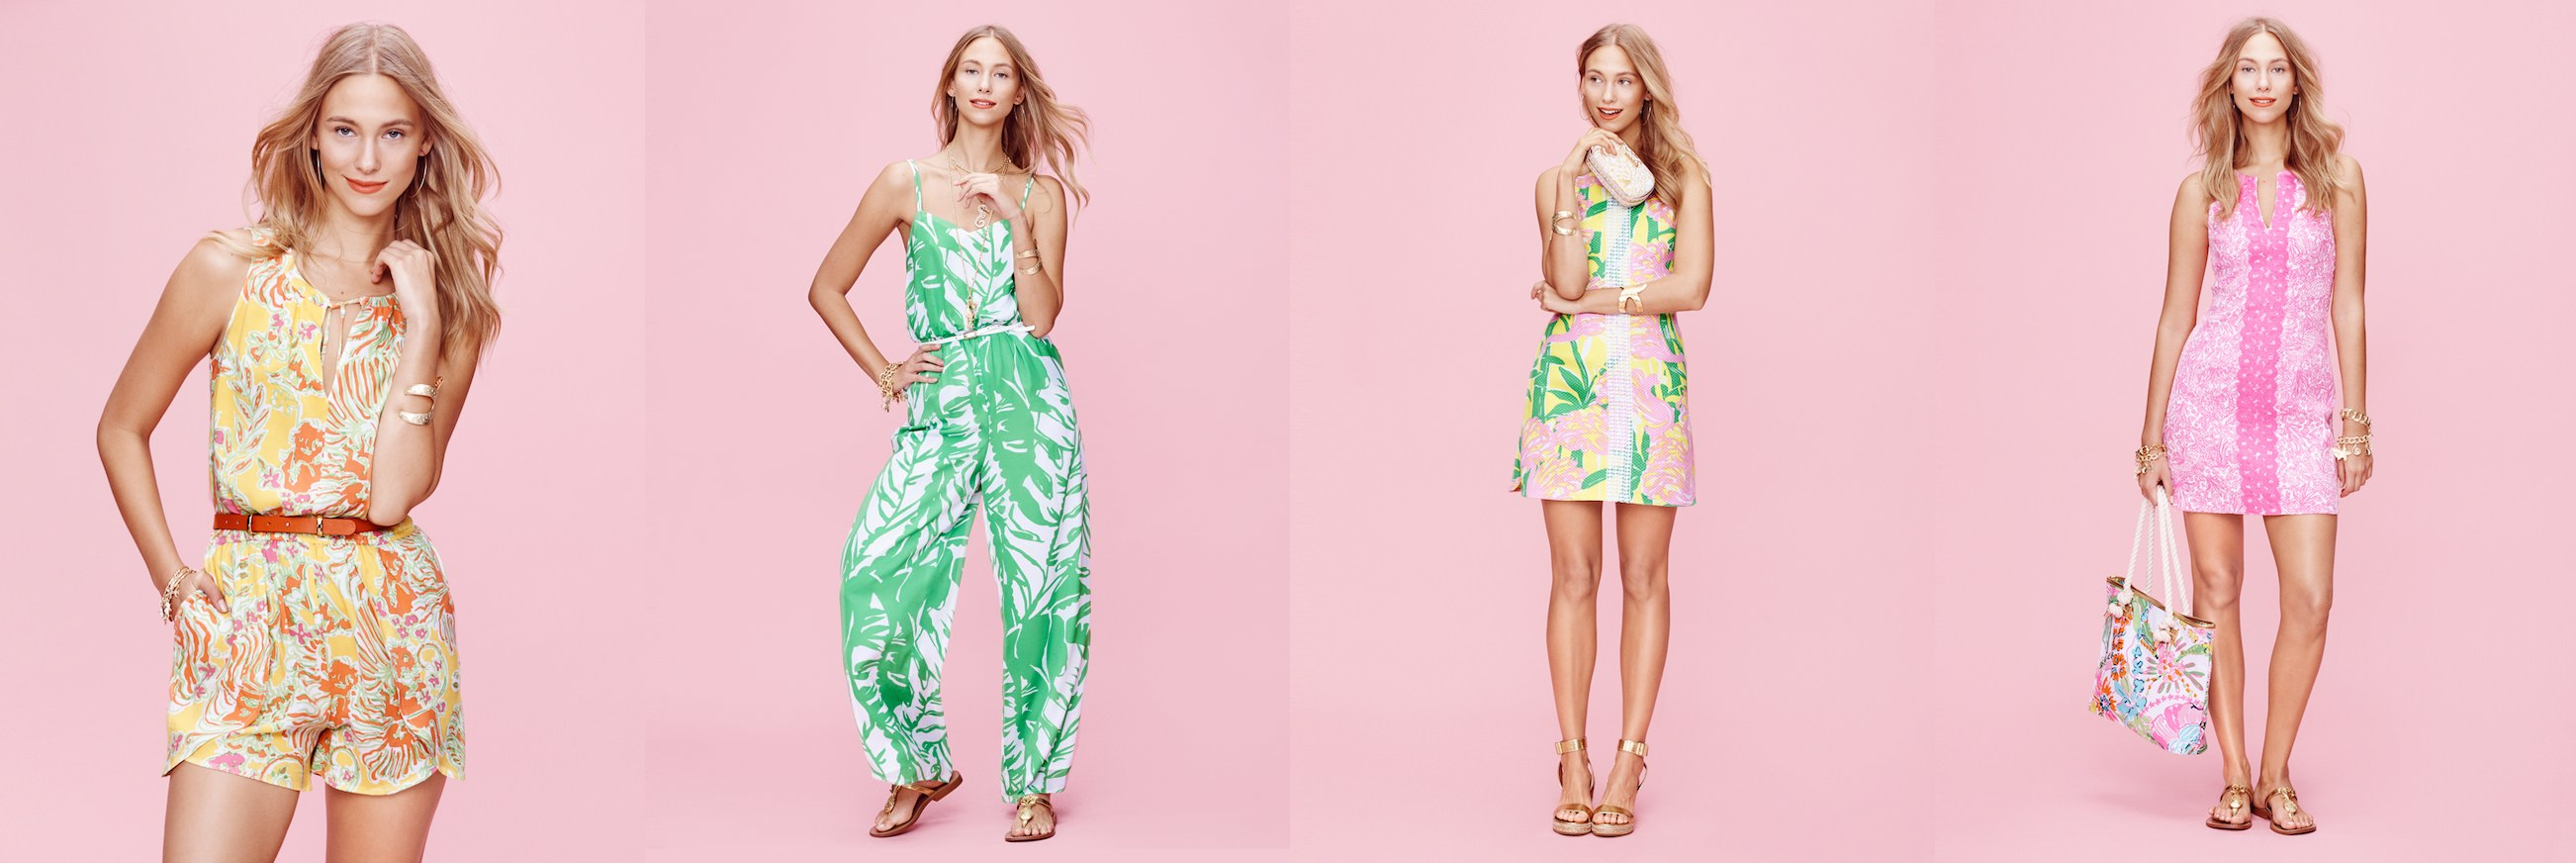 Lilly Pulitzer for Target: Canada is missing out! - Pearls and Polkadots